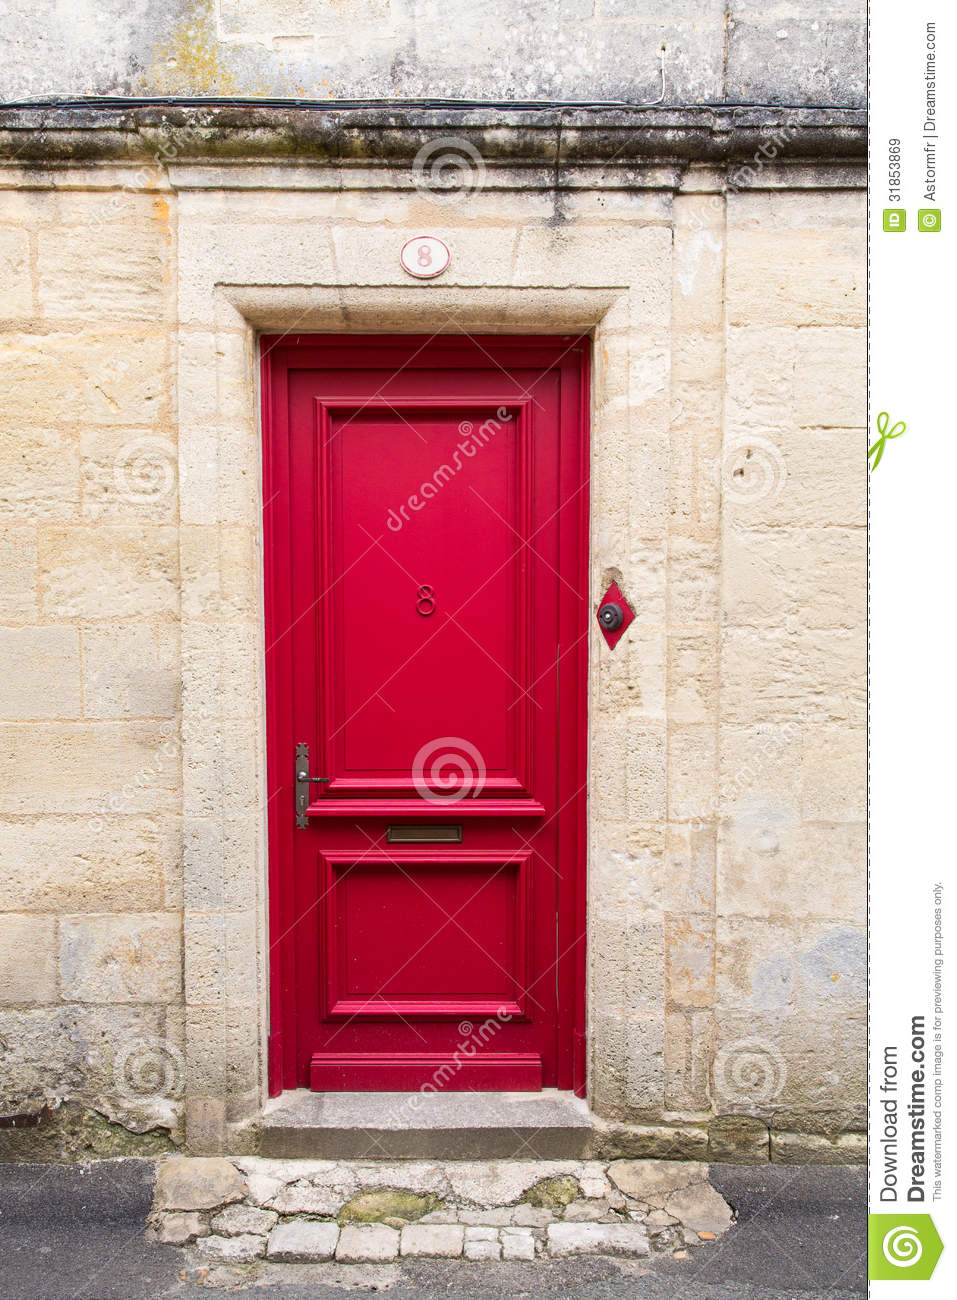 Red Doors Stone : Red door royalty free stock images image